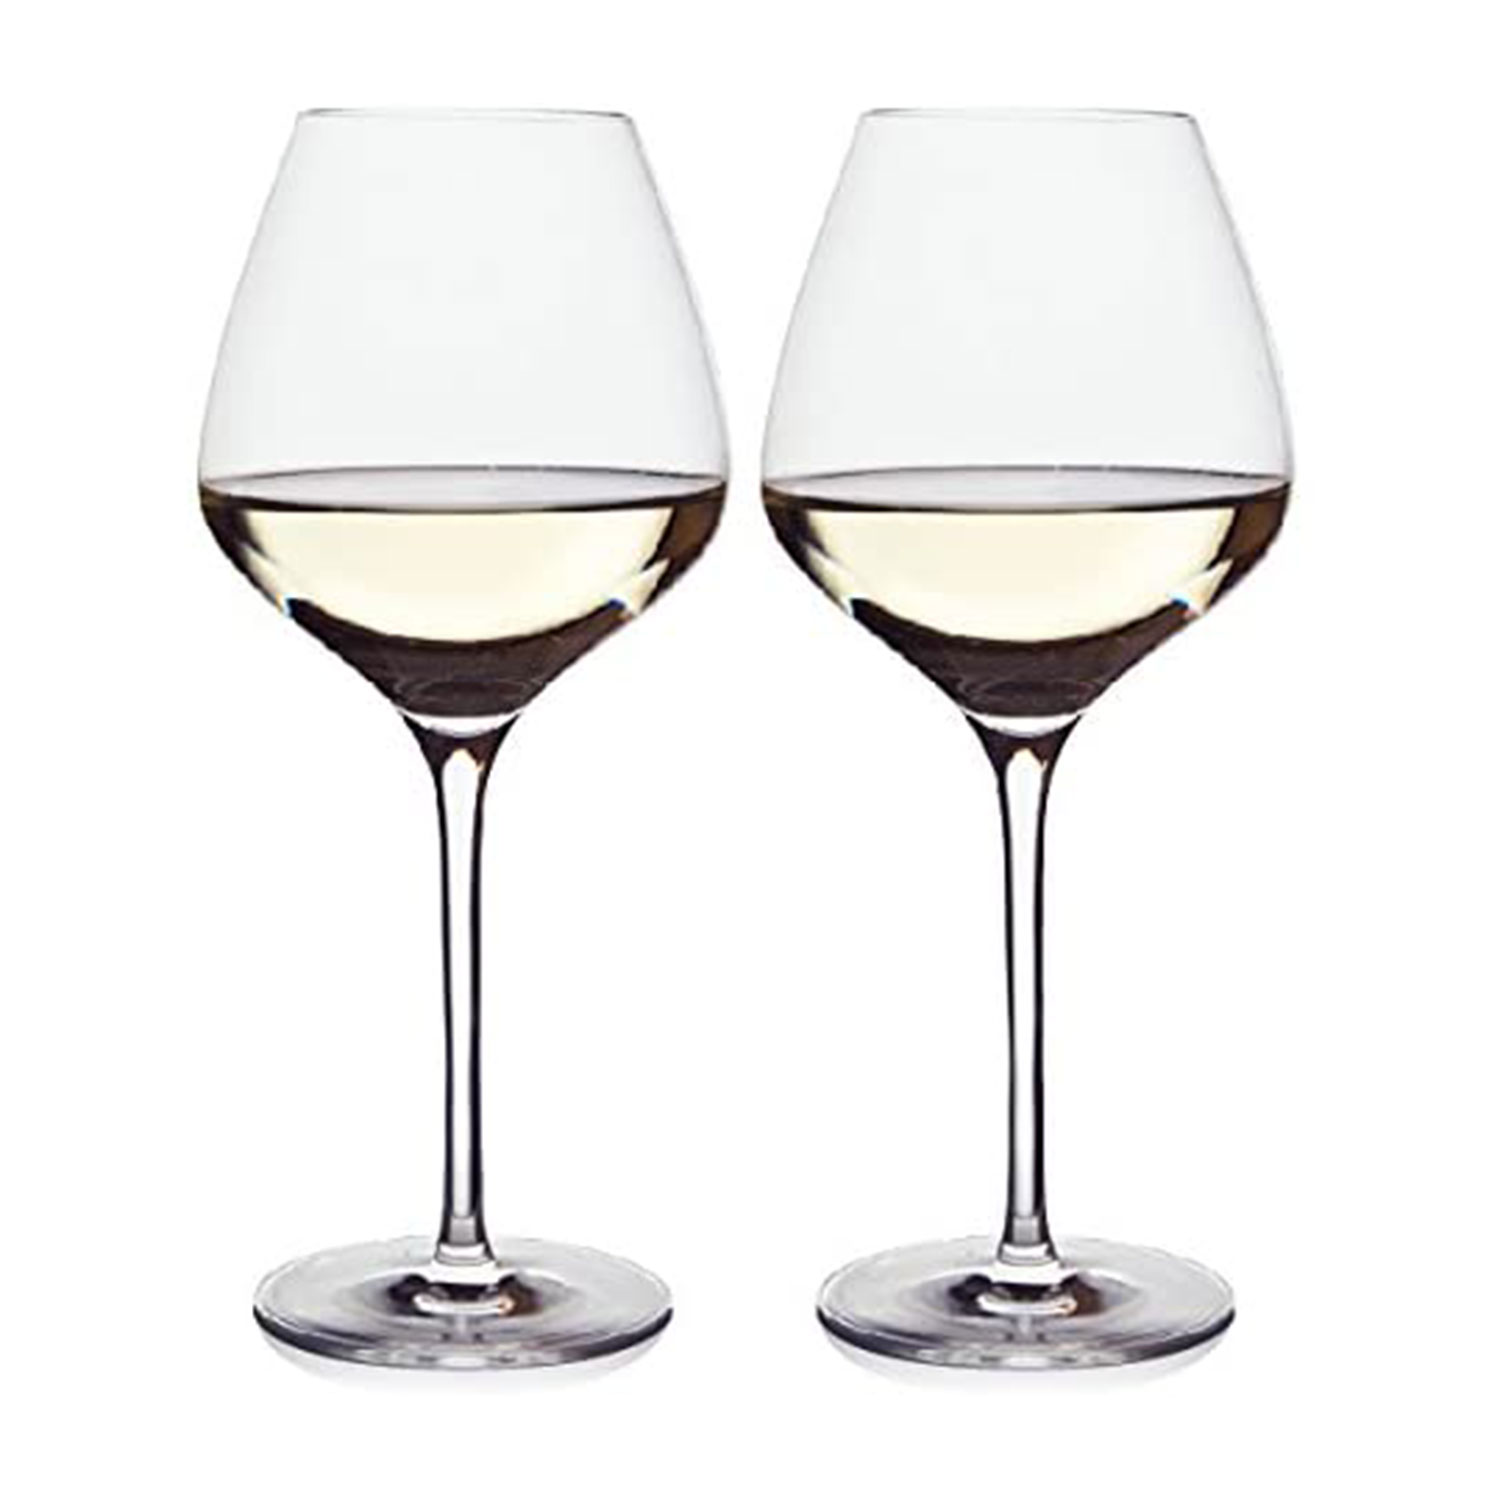 The One Wine Glass